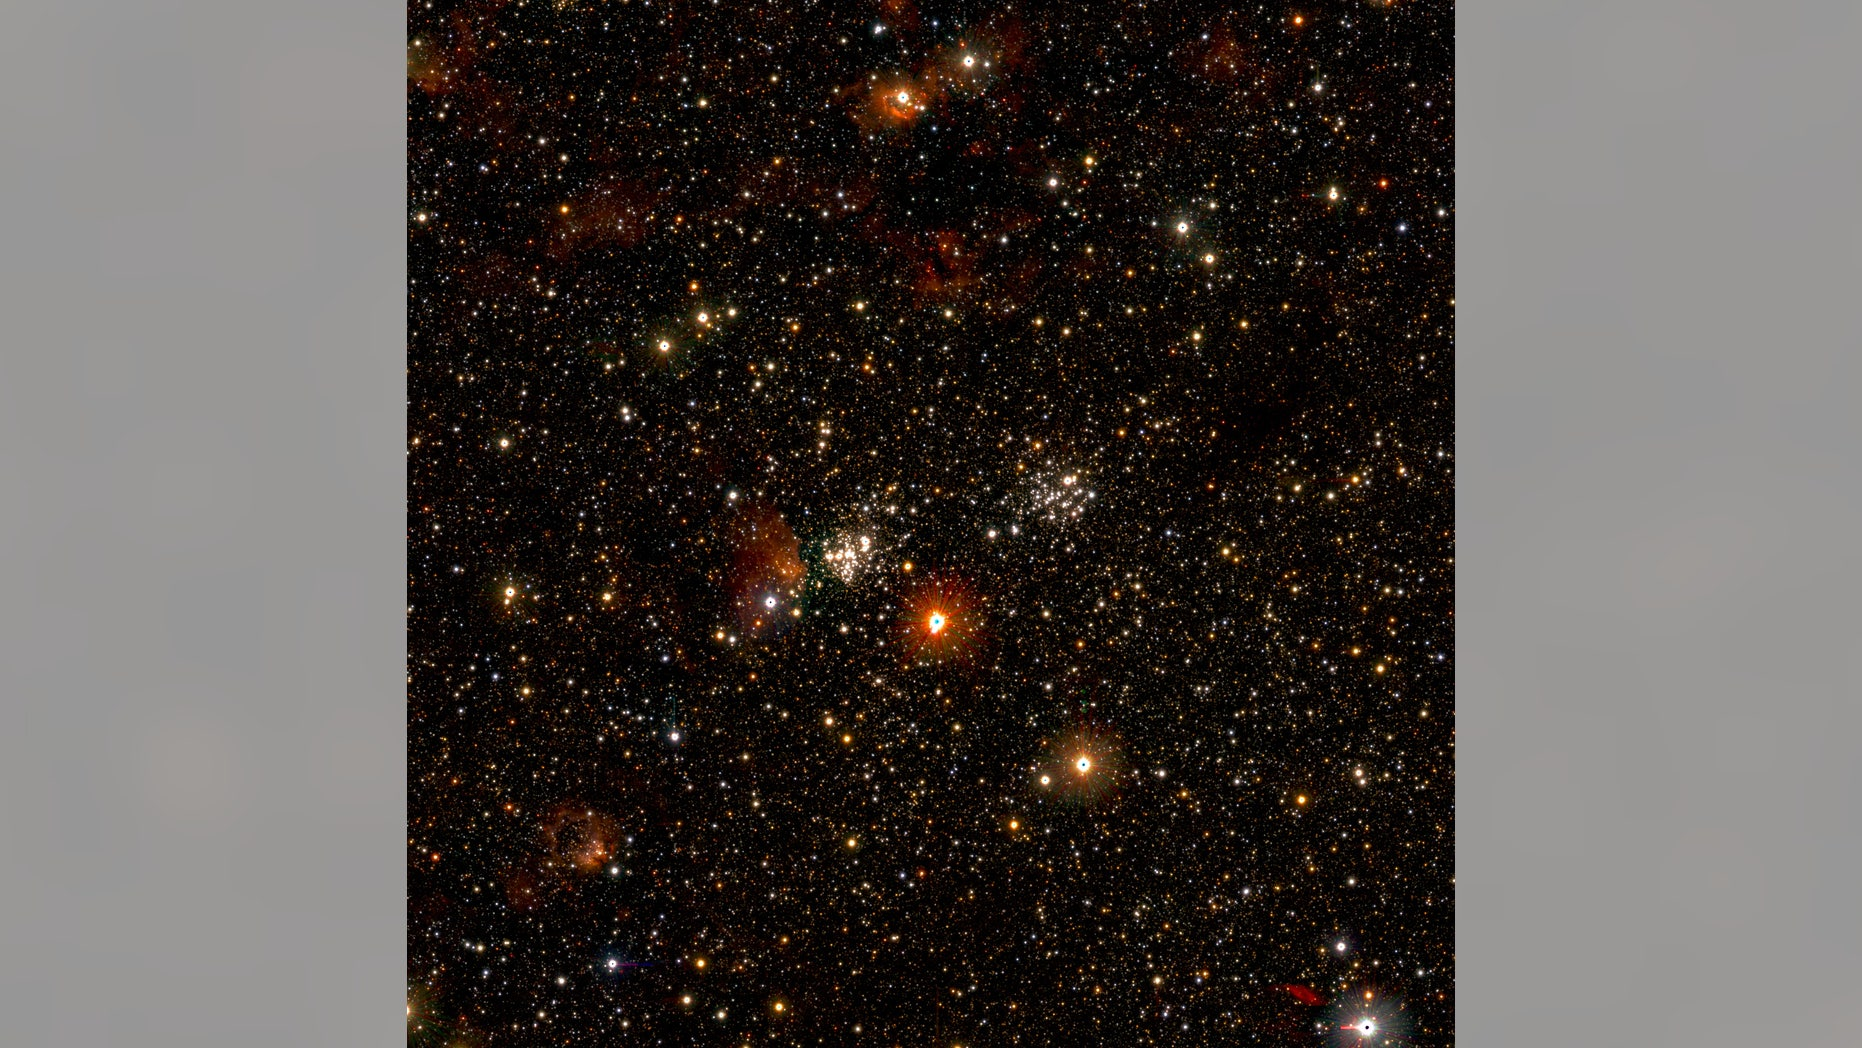 A star-forming region in our Milky Way galaxy. This image is a zoomed-in detail from a larger photo that captures 1 billion of the Milky Way's stars.